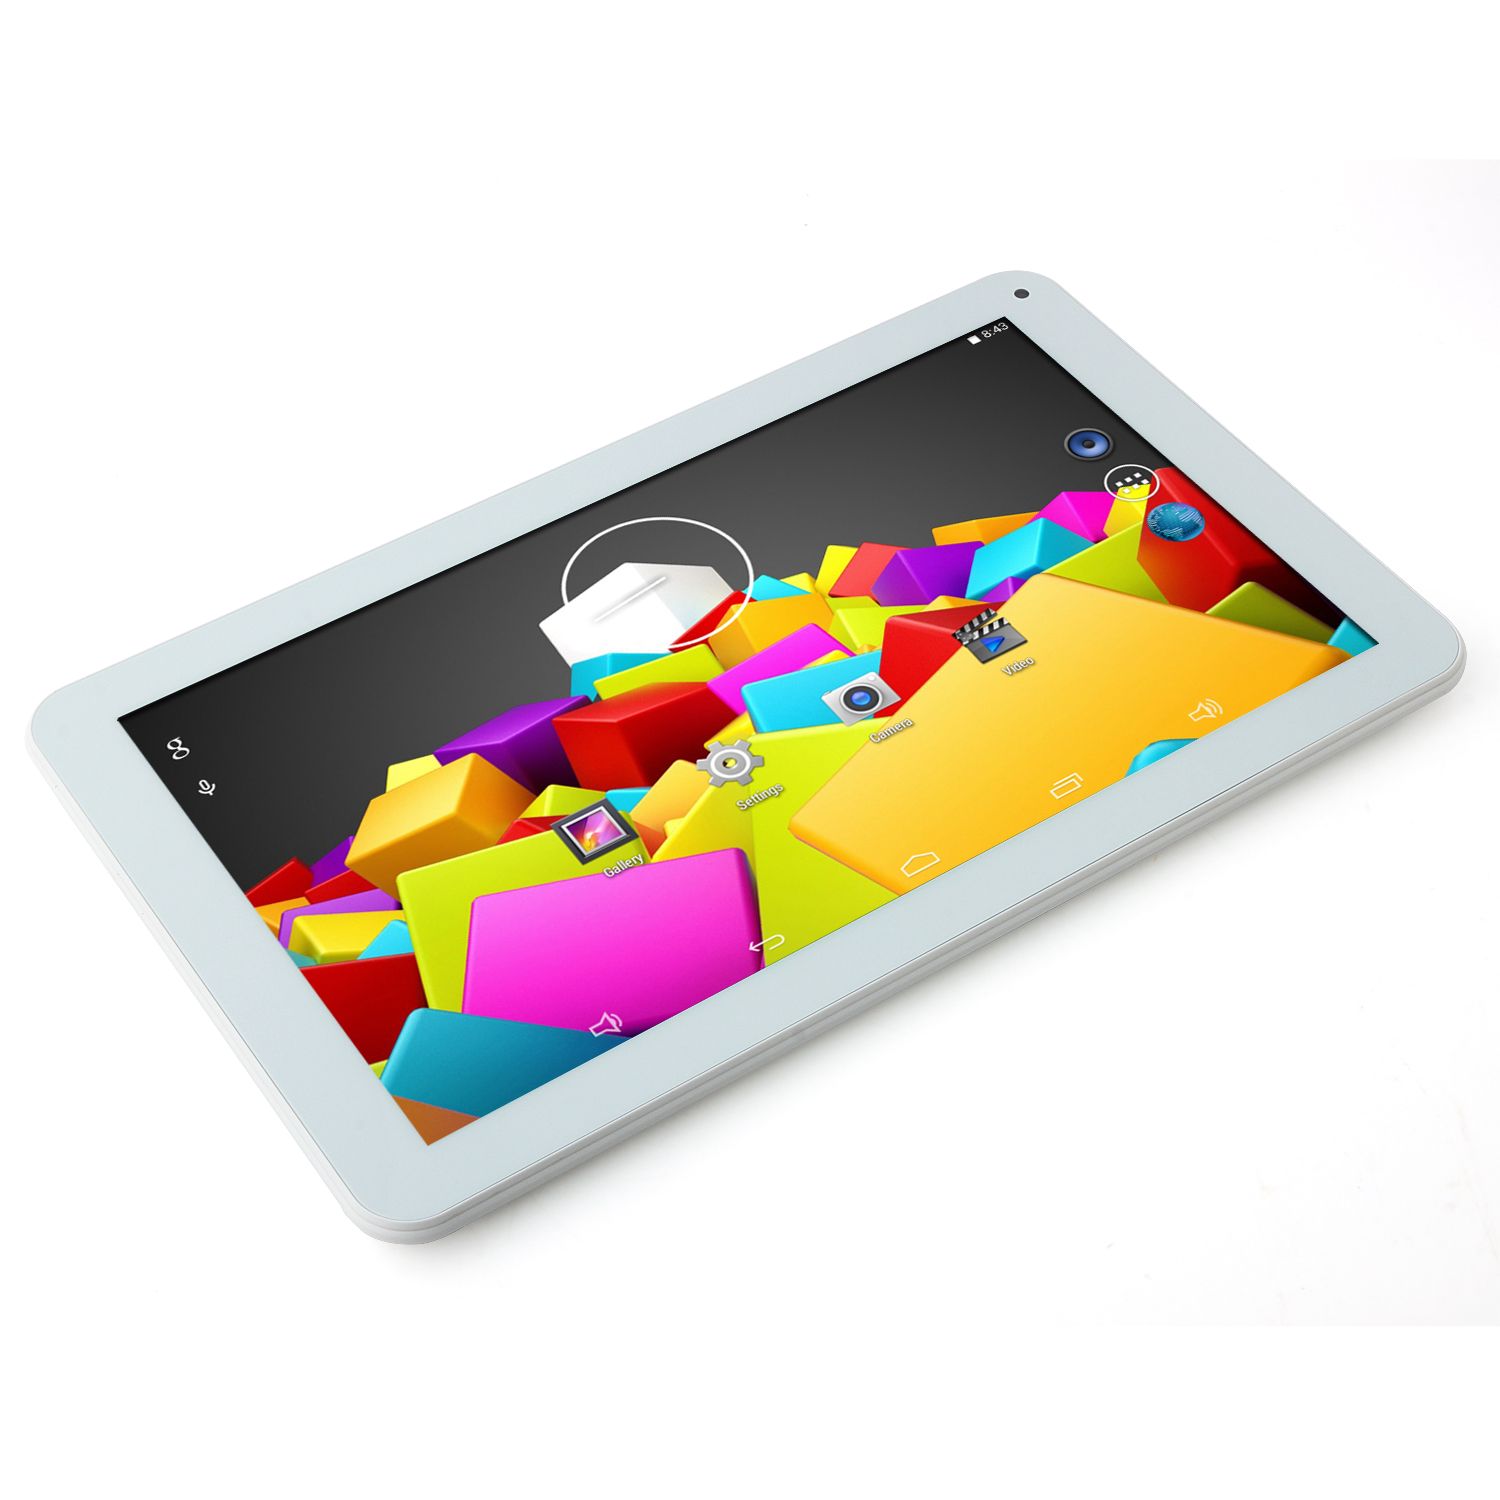 VENSTAR4050 Tablet PC Quad Core RK3188 10.1 Inch Android 4.4 HDMI 8GB Silver